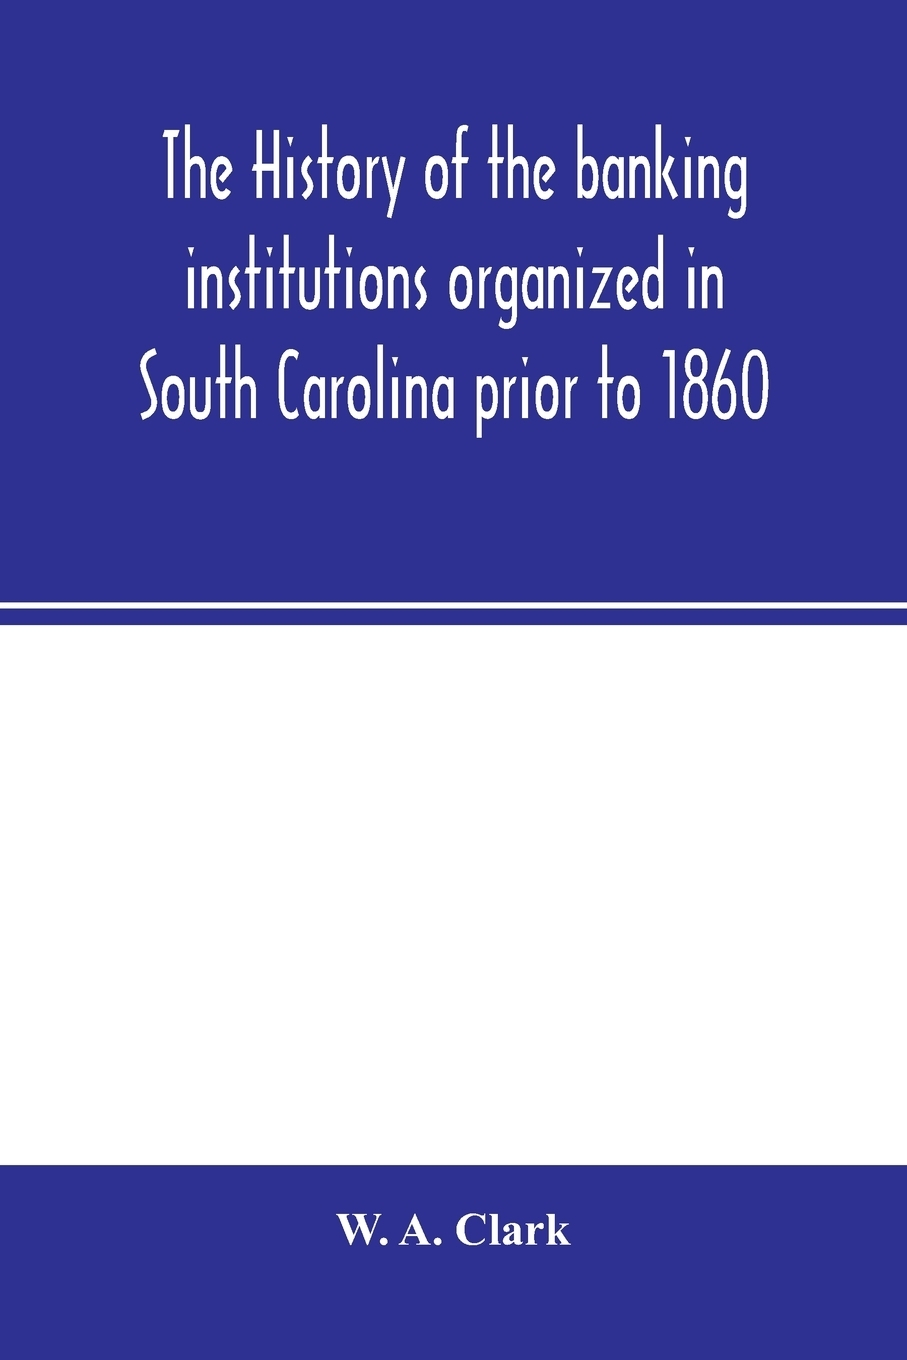 W. A. Clark. The history of the banking institutions organized in South Carolina prior to 1860